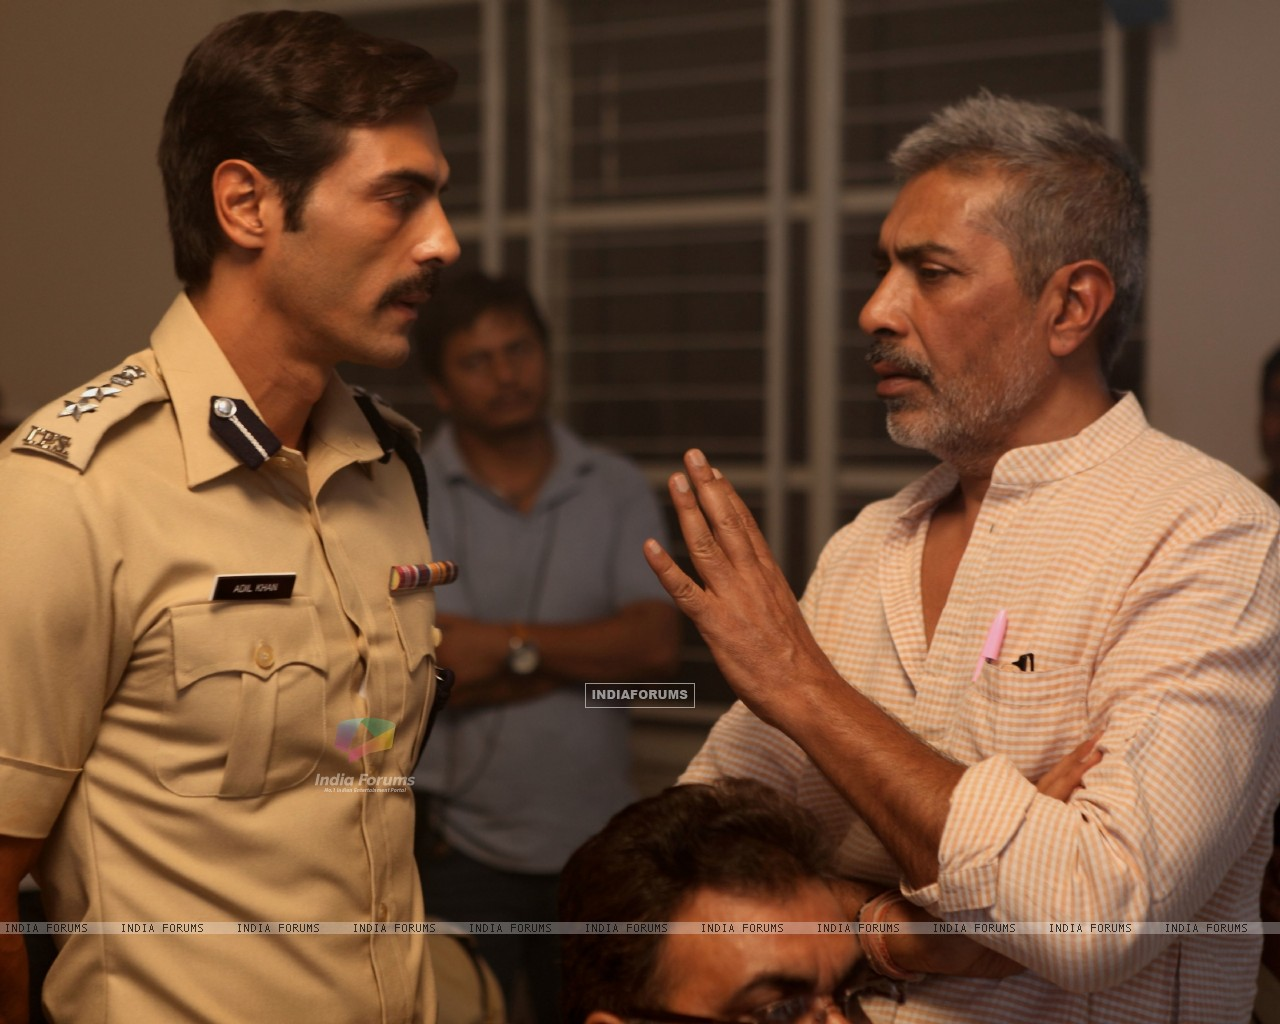 Arjun Rampal and Prakash Jha on the set of Chakravyuh. (232936) size:1280x1024